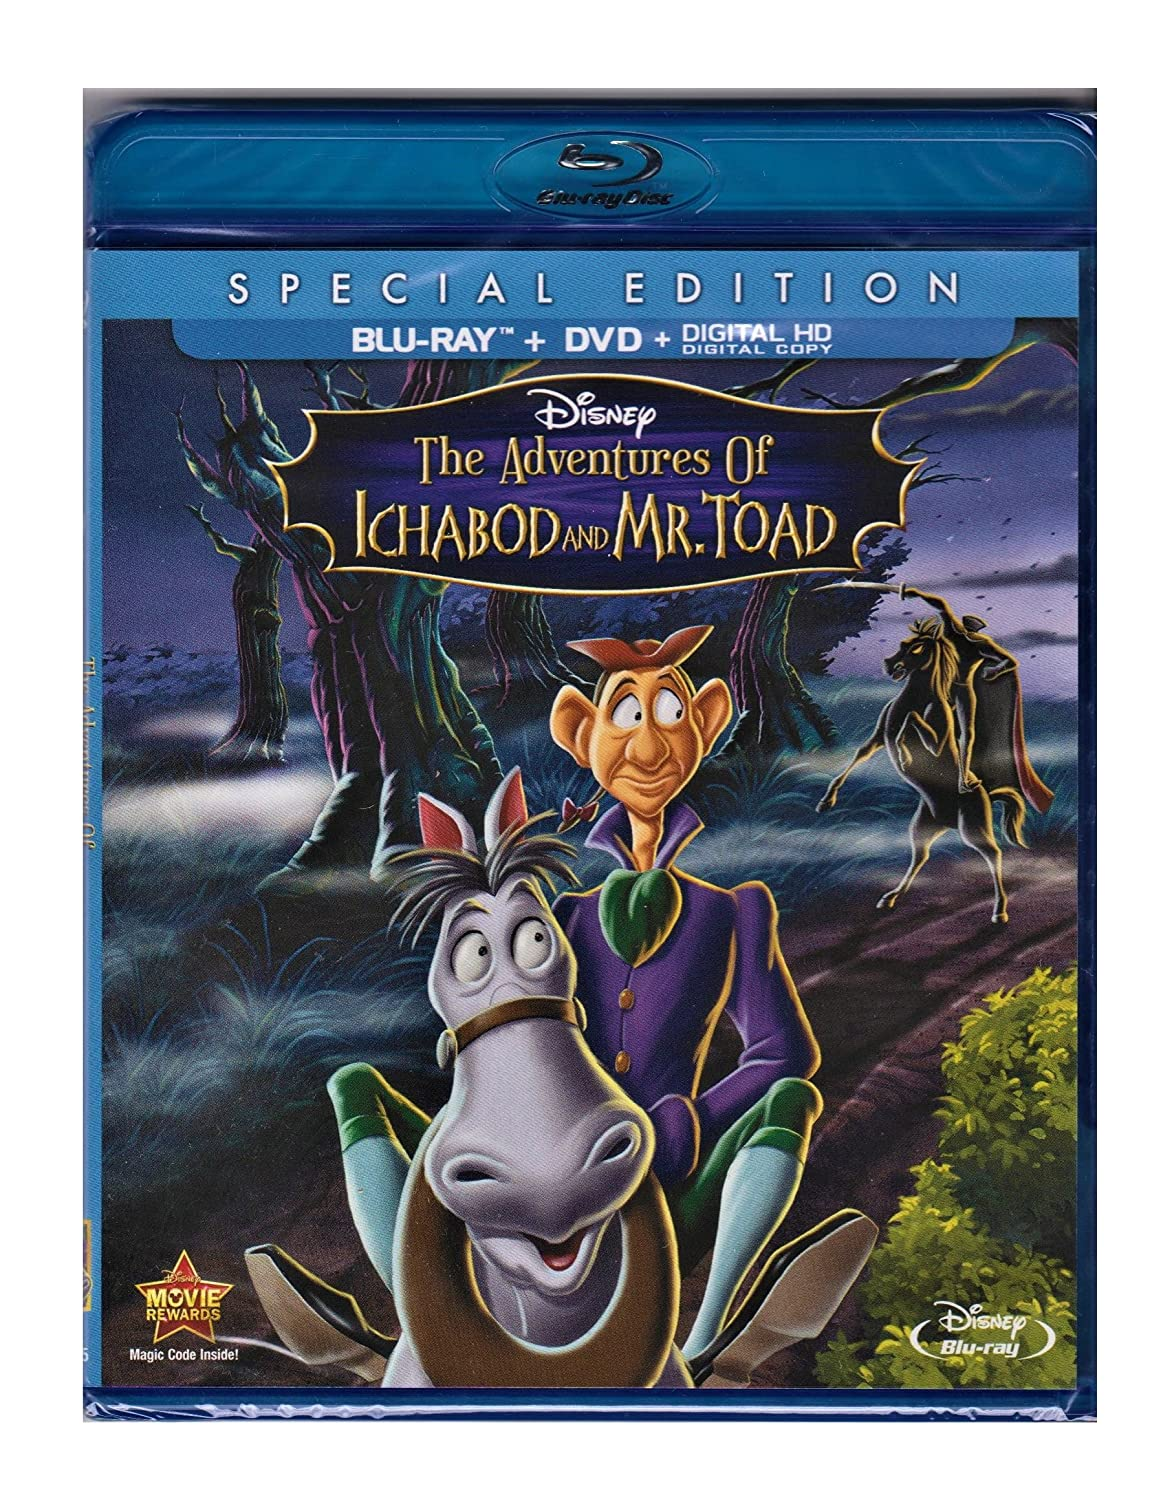 The Adventures Of Ichabod AndMr. Toad